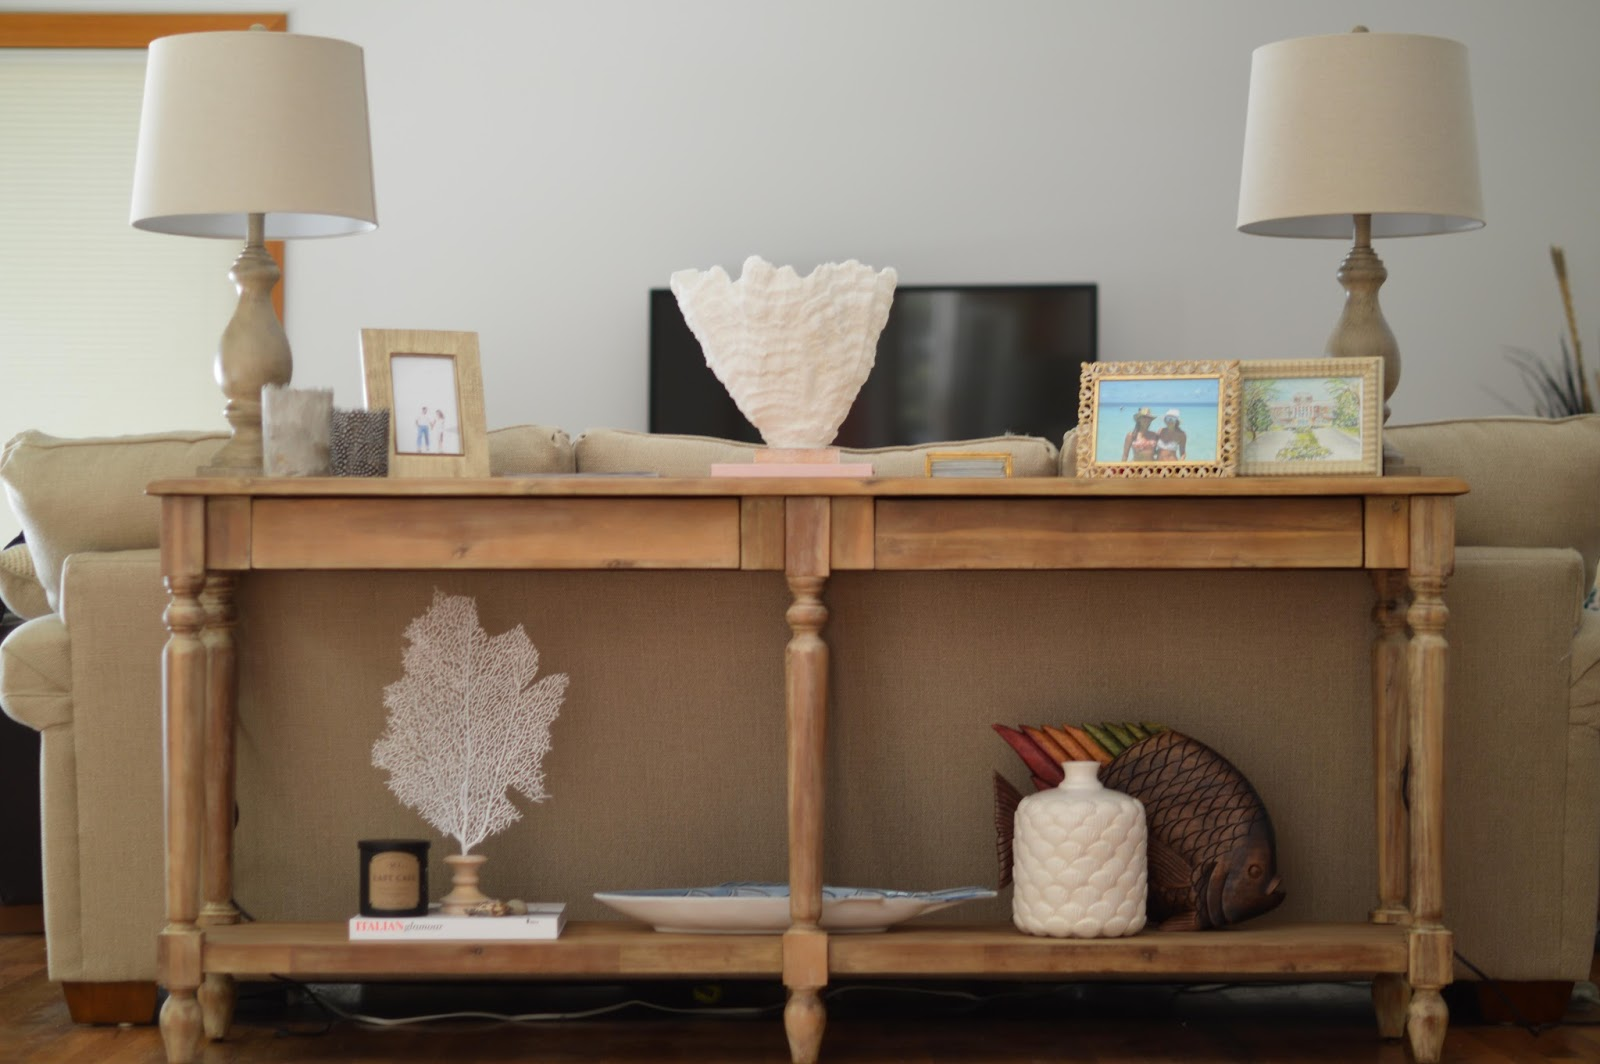 Our Home Is Definitely Still A Work In Progress! We Have So Much We Want To  Do In Our Living Room   A Larger Table For Our TV, Framing Wedding Photos  For ...